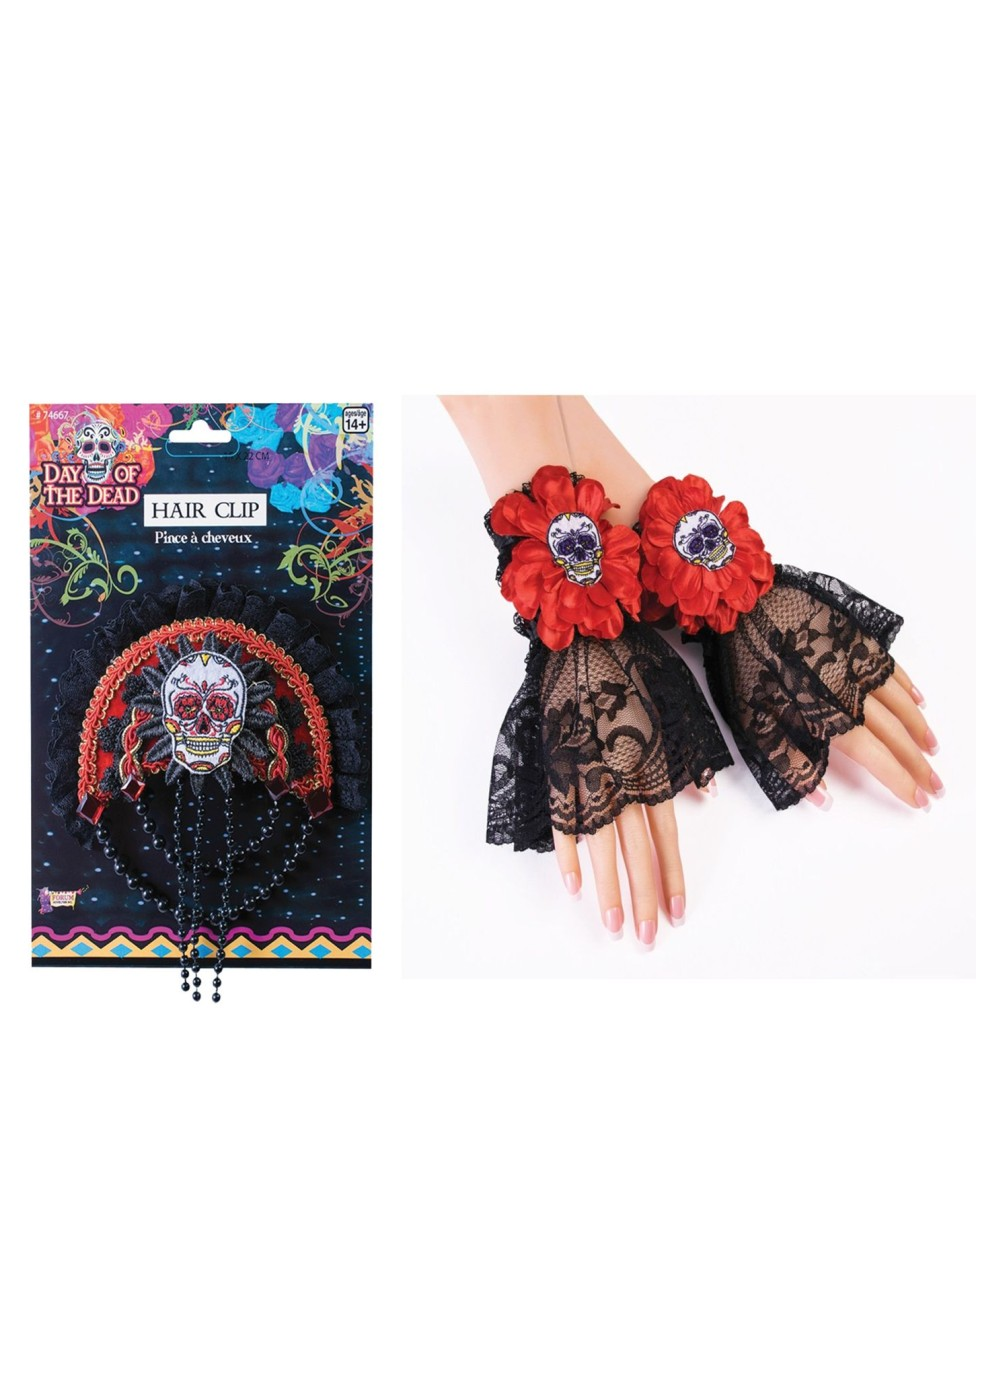 Day Of The Dead Wrist Cuffs And Hair Clip Set Accessories